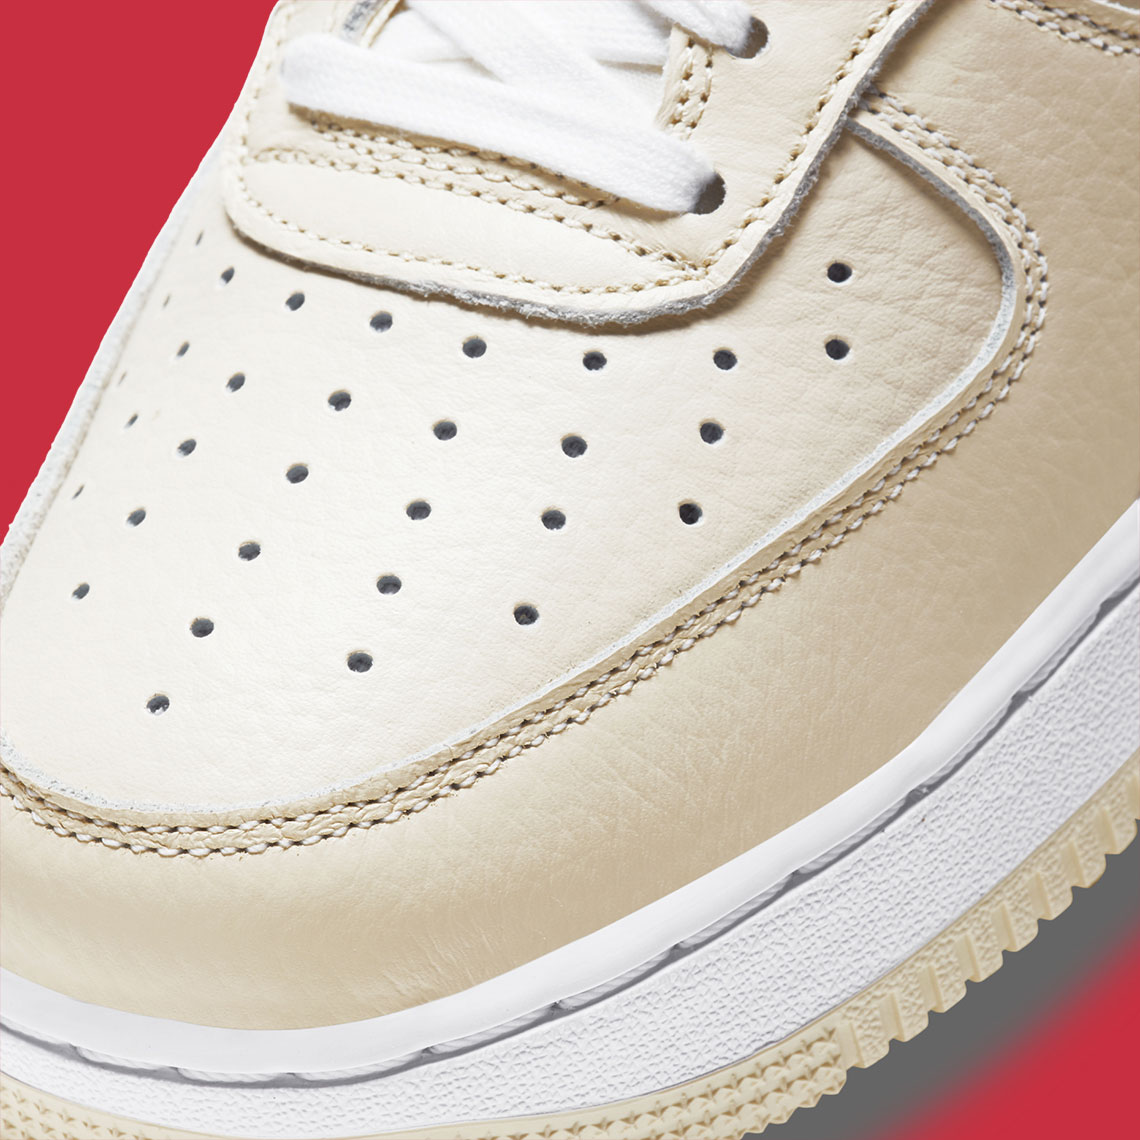 nike-air-force-1-popcorn-release-date-price-resell-where-to-buy-7